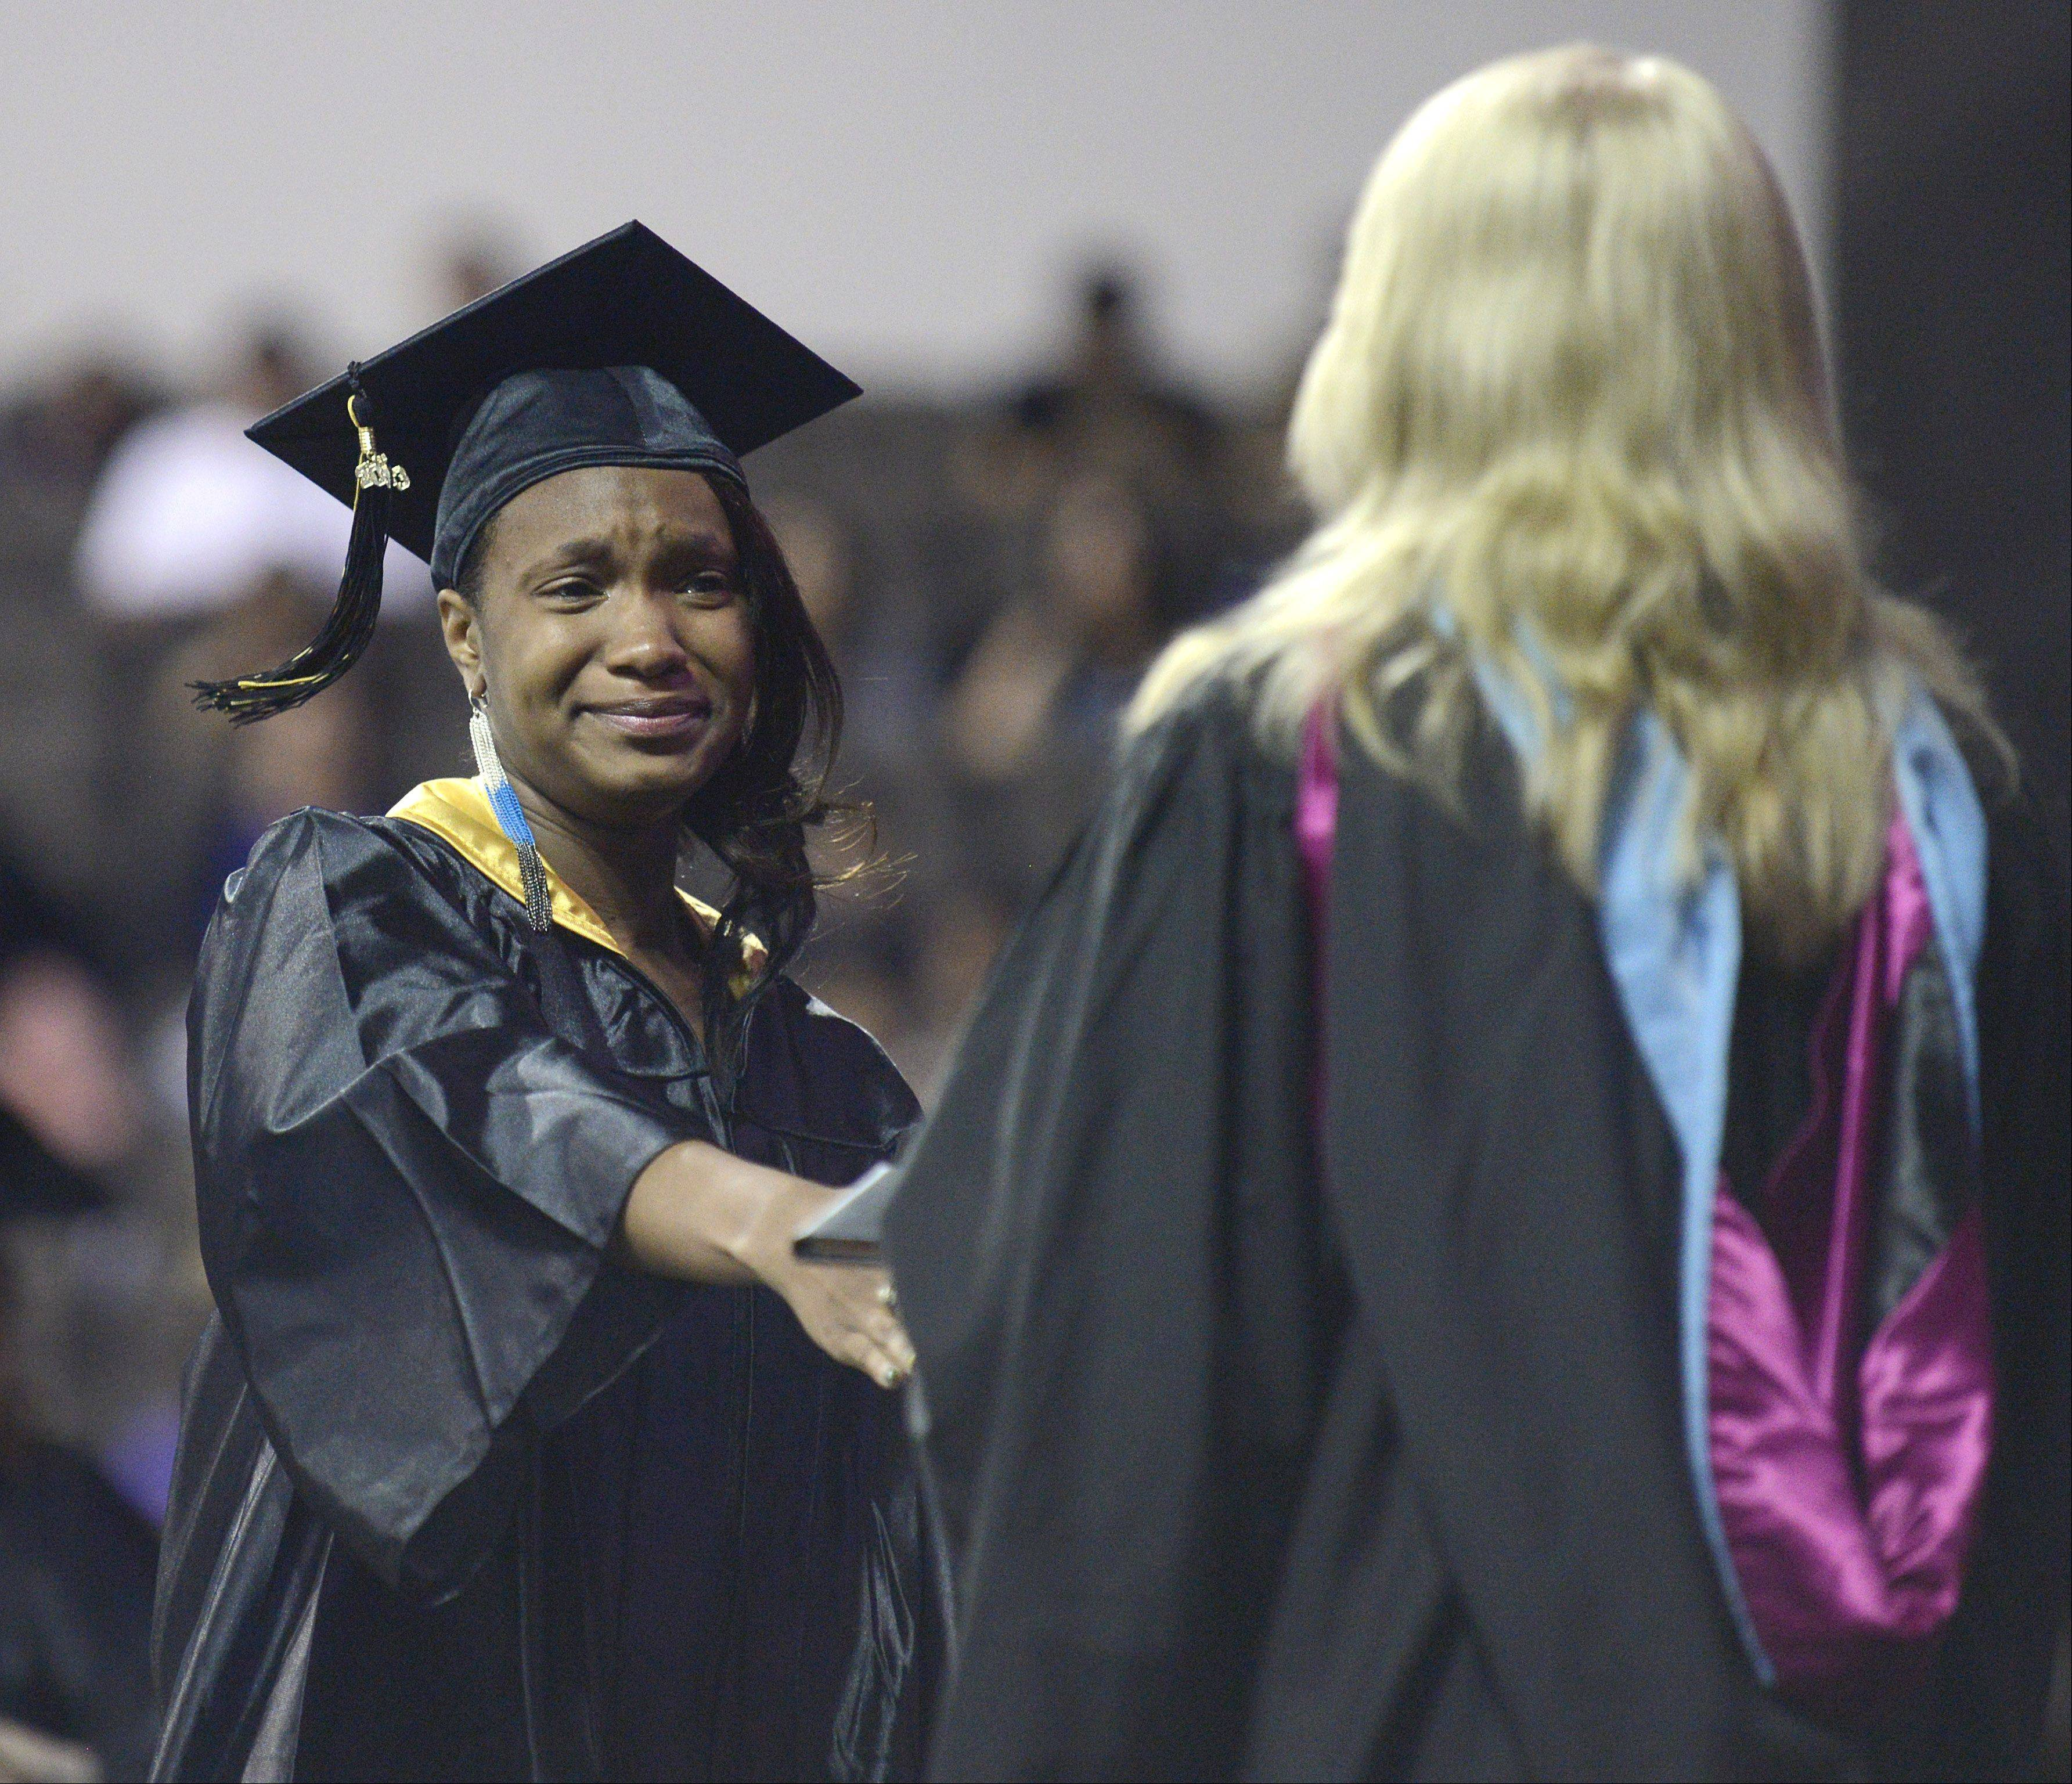 Kanika Bowens is brought to tears as she receives her diploma at Streamwood High School's commencement ceremony at the Sears Centre in Hoffman Estates on Saturday, May 25.